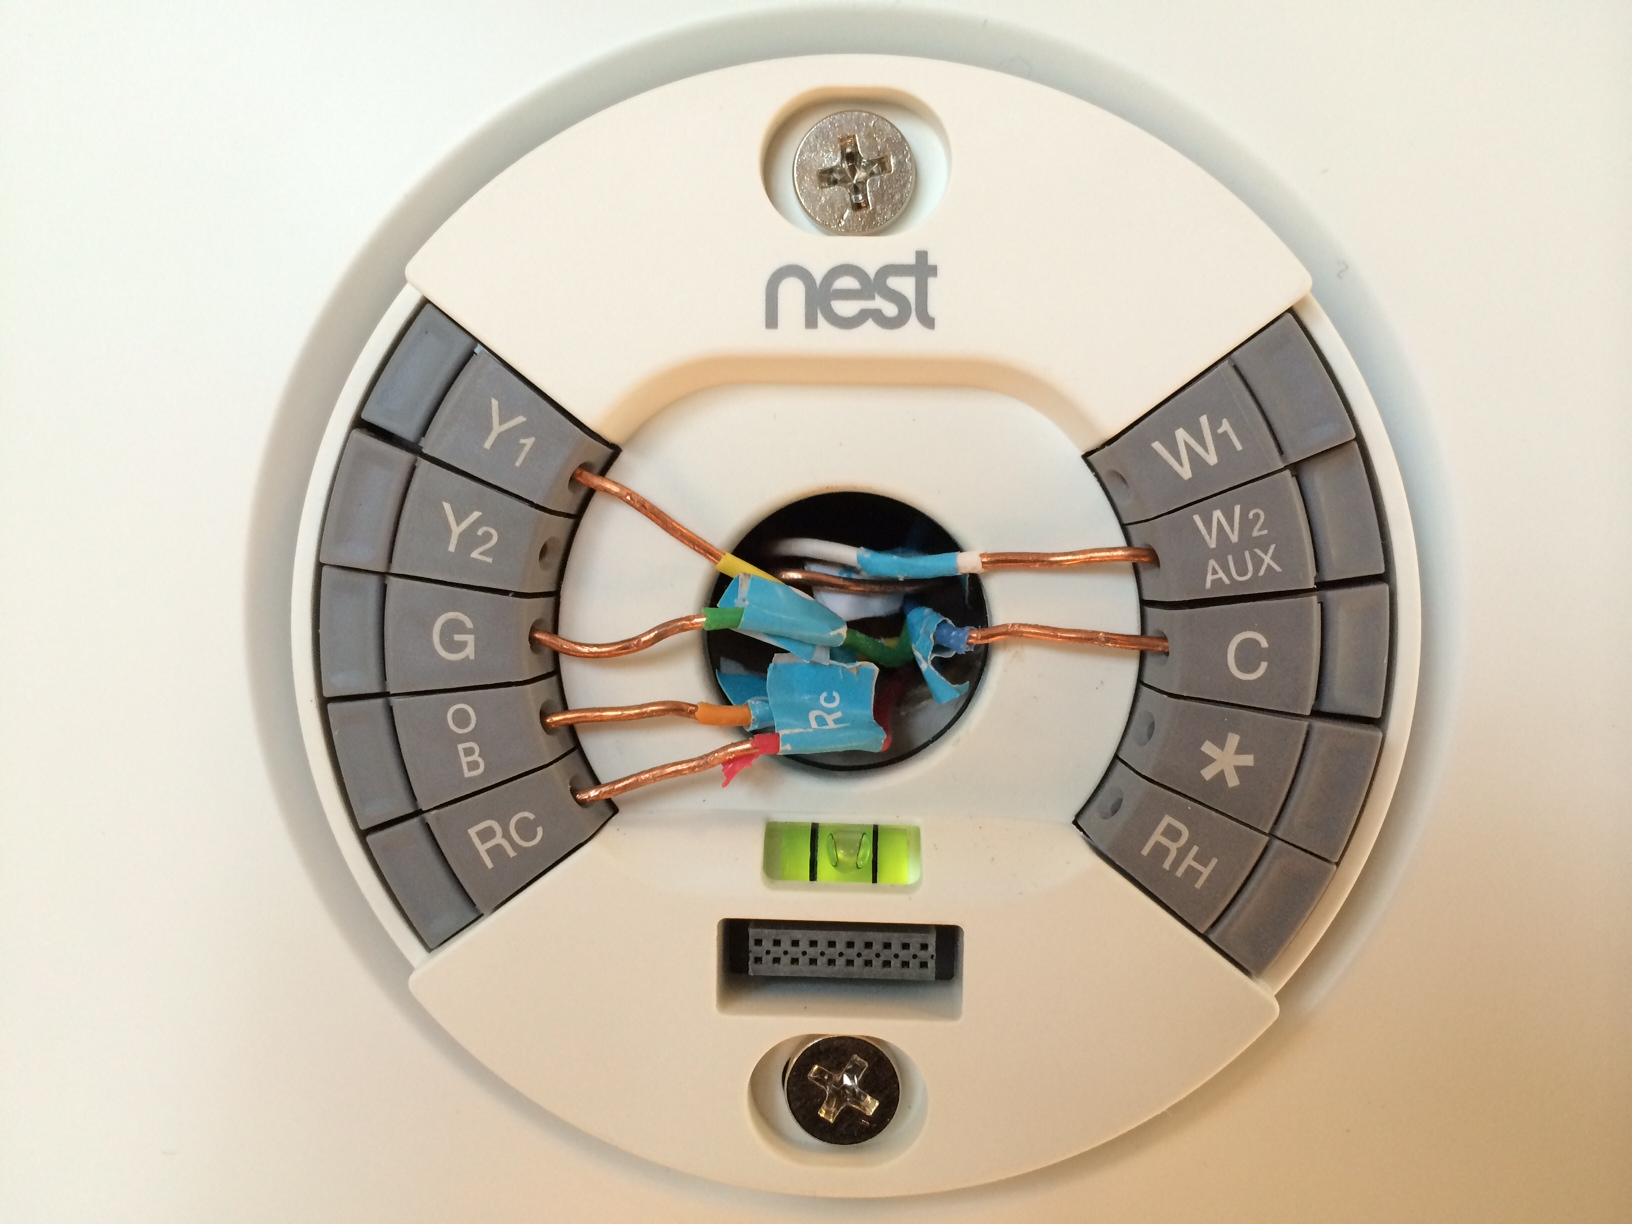 Hydronic Heating Nest Thermostat Intertherm Electric Furnace Wiring Diagram Photos Of